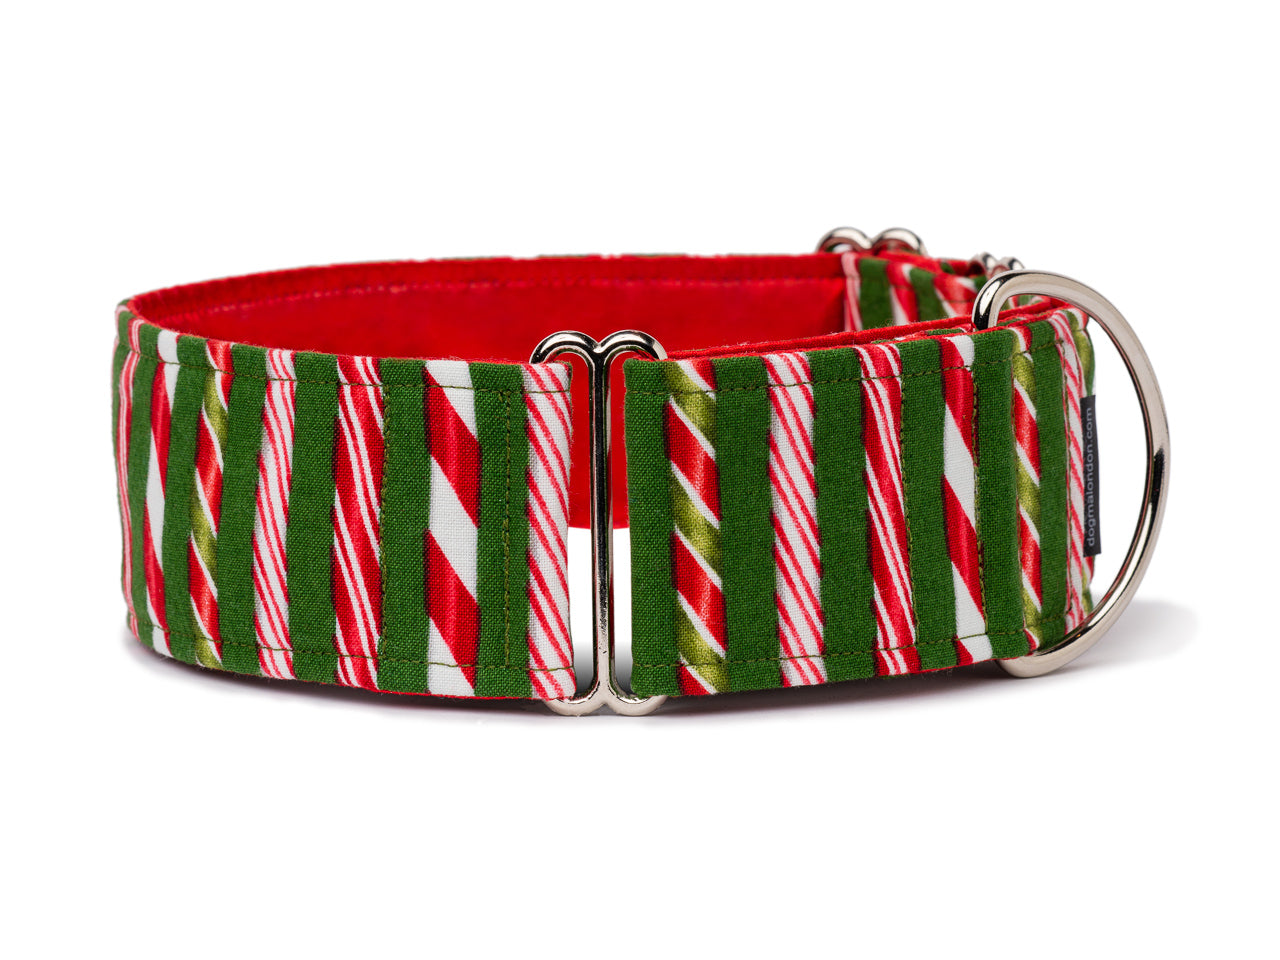 Iconic red and white peppermint sticks are a classic Christmas treat your dog can wear!